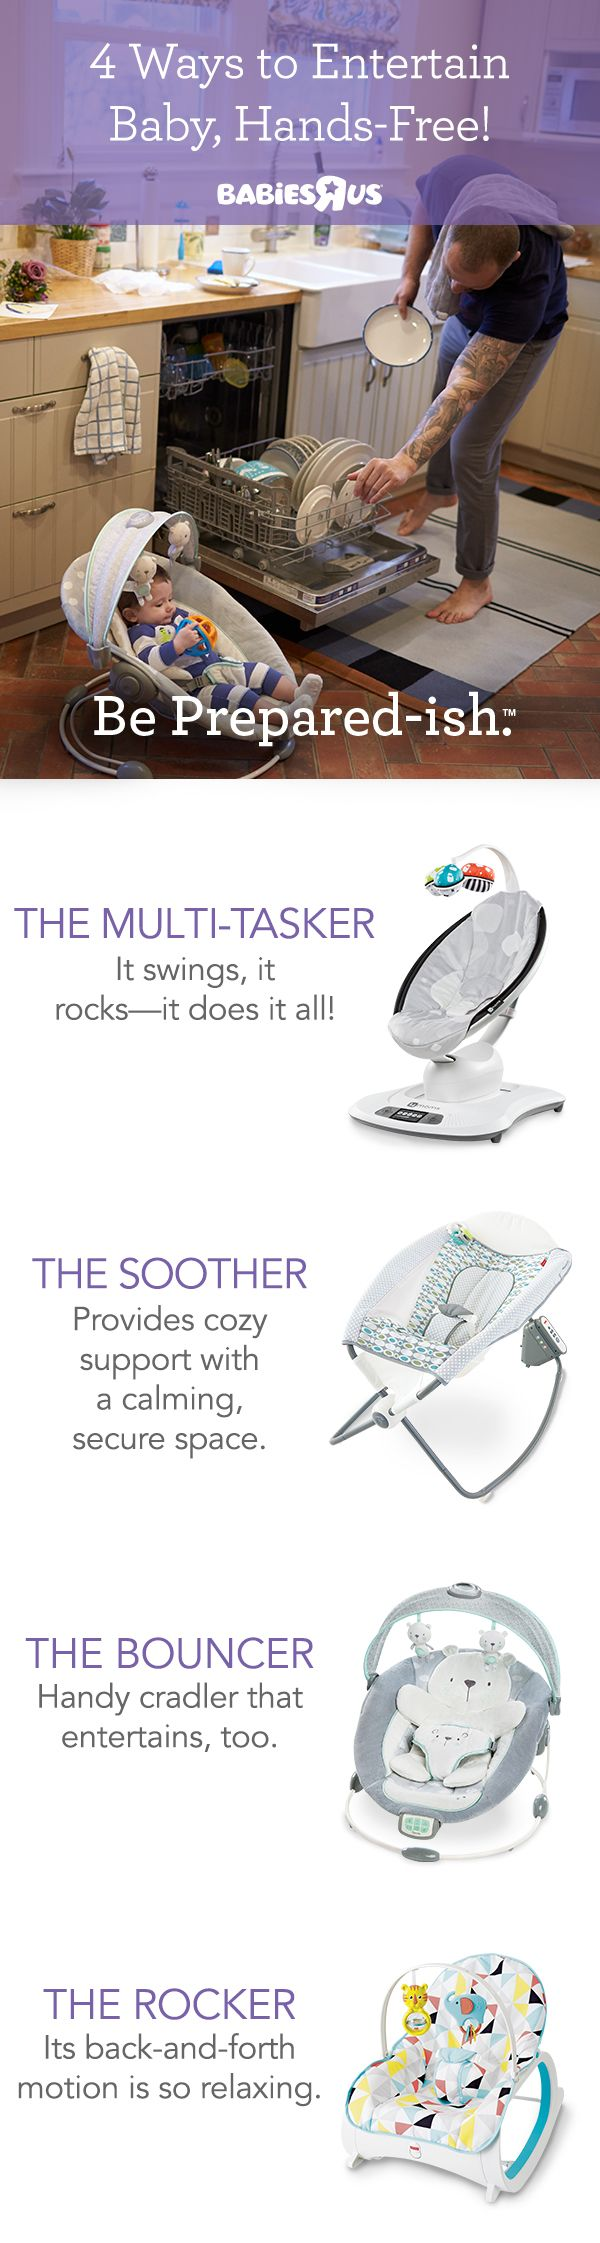 Dirty dishes in the sink? Laundry piling up? We know the struggle is real. When you have a little one, you barely have a moment to spare! But with portable, hands-free gear, you can tackle your to-do list while keeping an eye on and entertaining baby. So, let the rhythmic, back-and-forth motion of these rockers, swings and sleepers soothe your little one while you get stuff done.